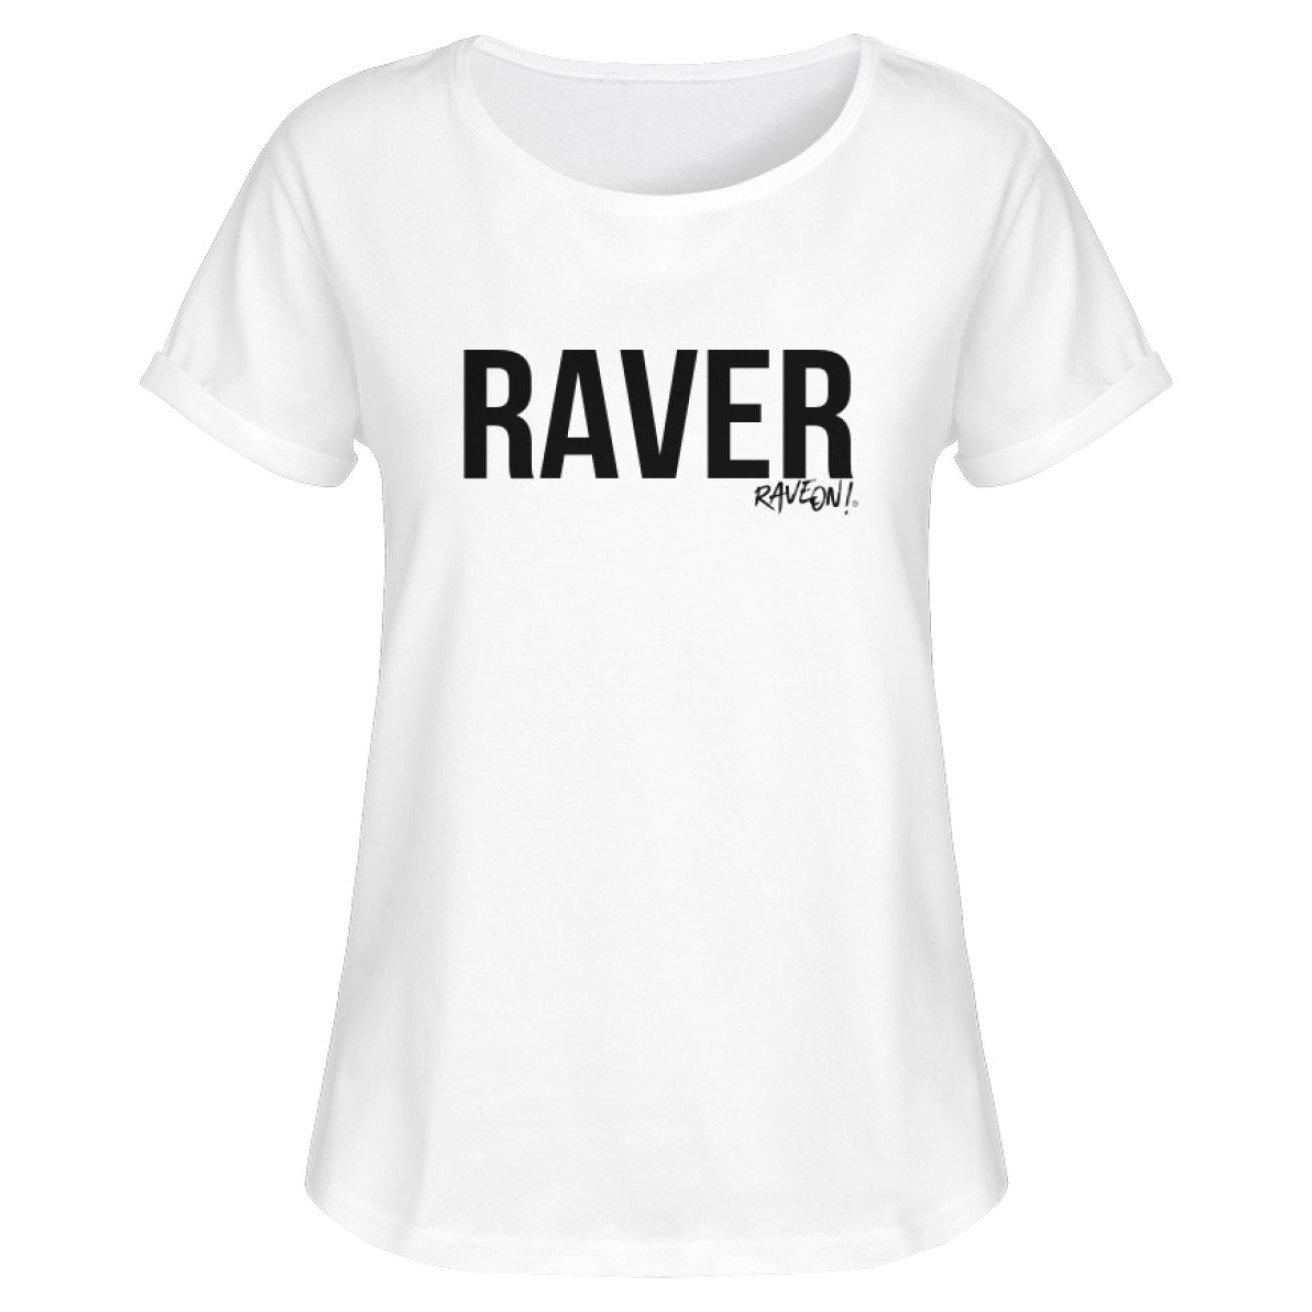 "Stylisches Rave On!® ""Raver"" Shirt w - Damen RollUp Shirt-Women Rollup Shirt-White-S-Rave-On! I www.rave-on.shop I Deine Rave & Techno Szene Shop I Design - Stylisches Rave On!® ""Raver"" Shirt w, rave, raver, techno - Sexy Festival Streetwear , Clubwear & Raver Style"